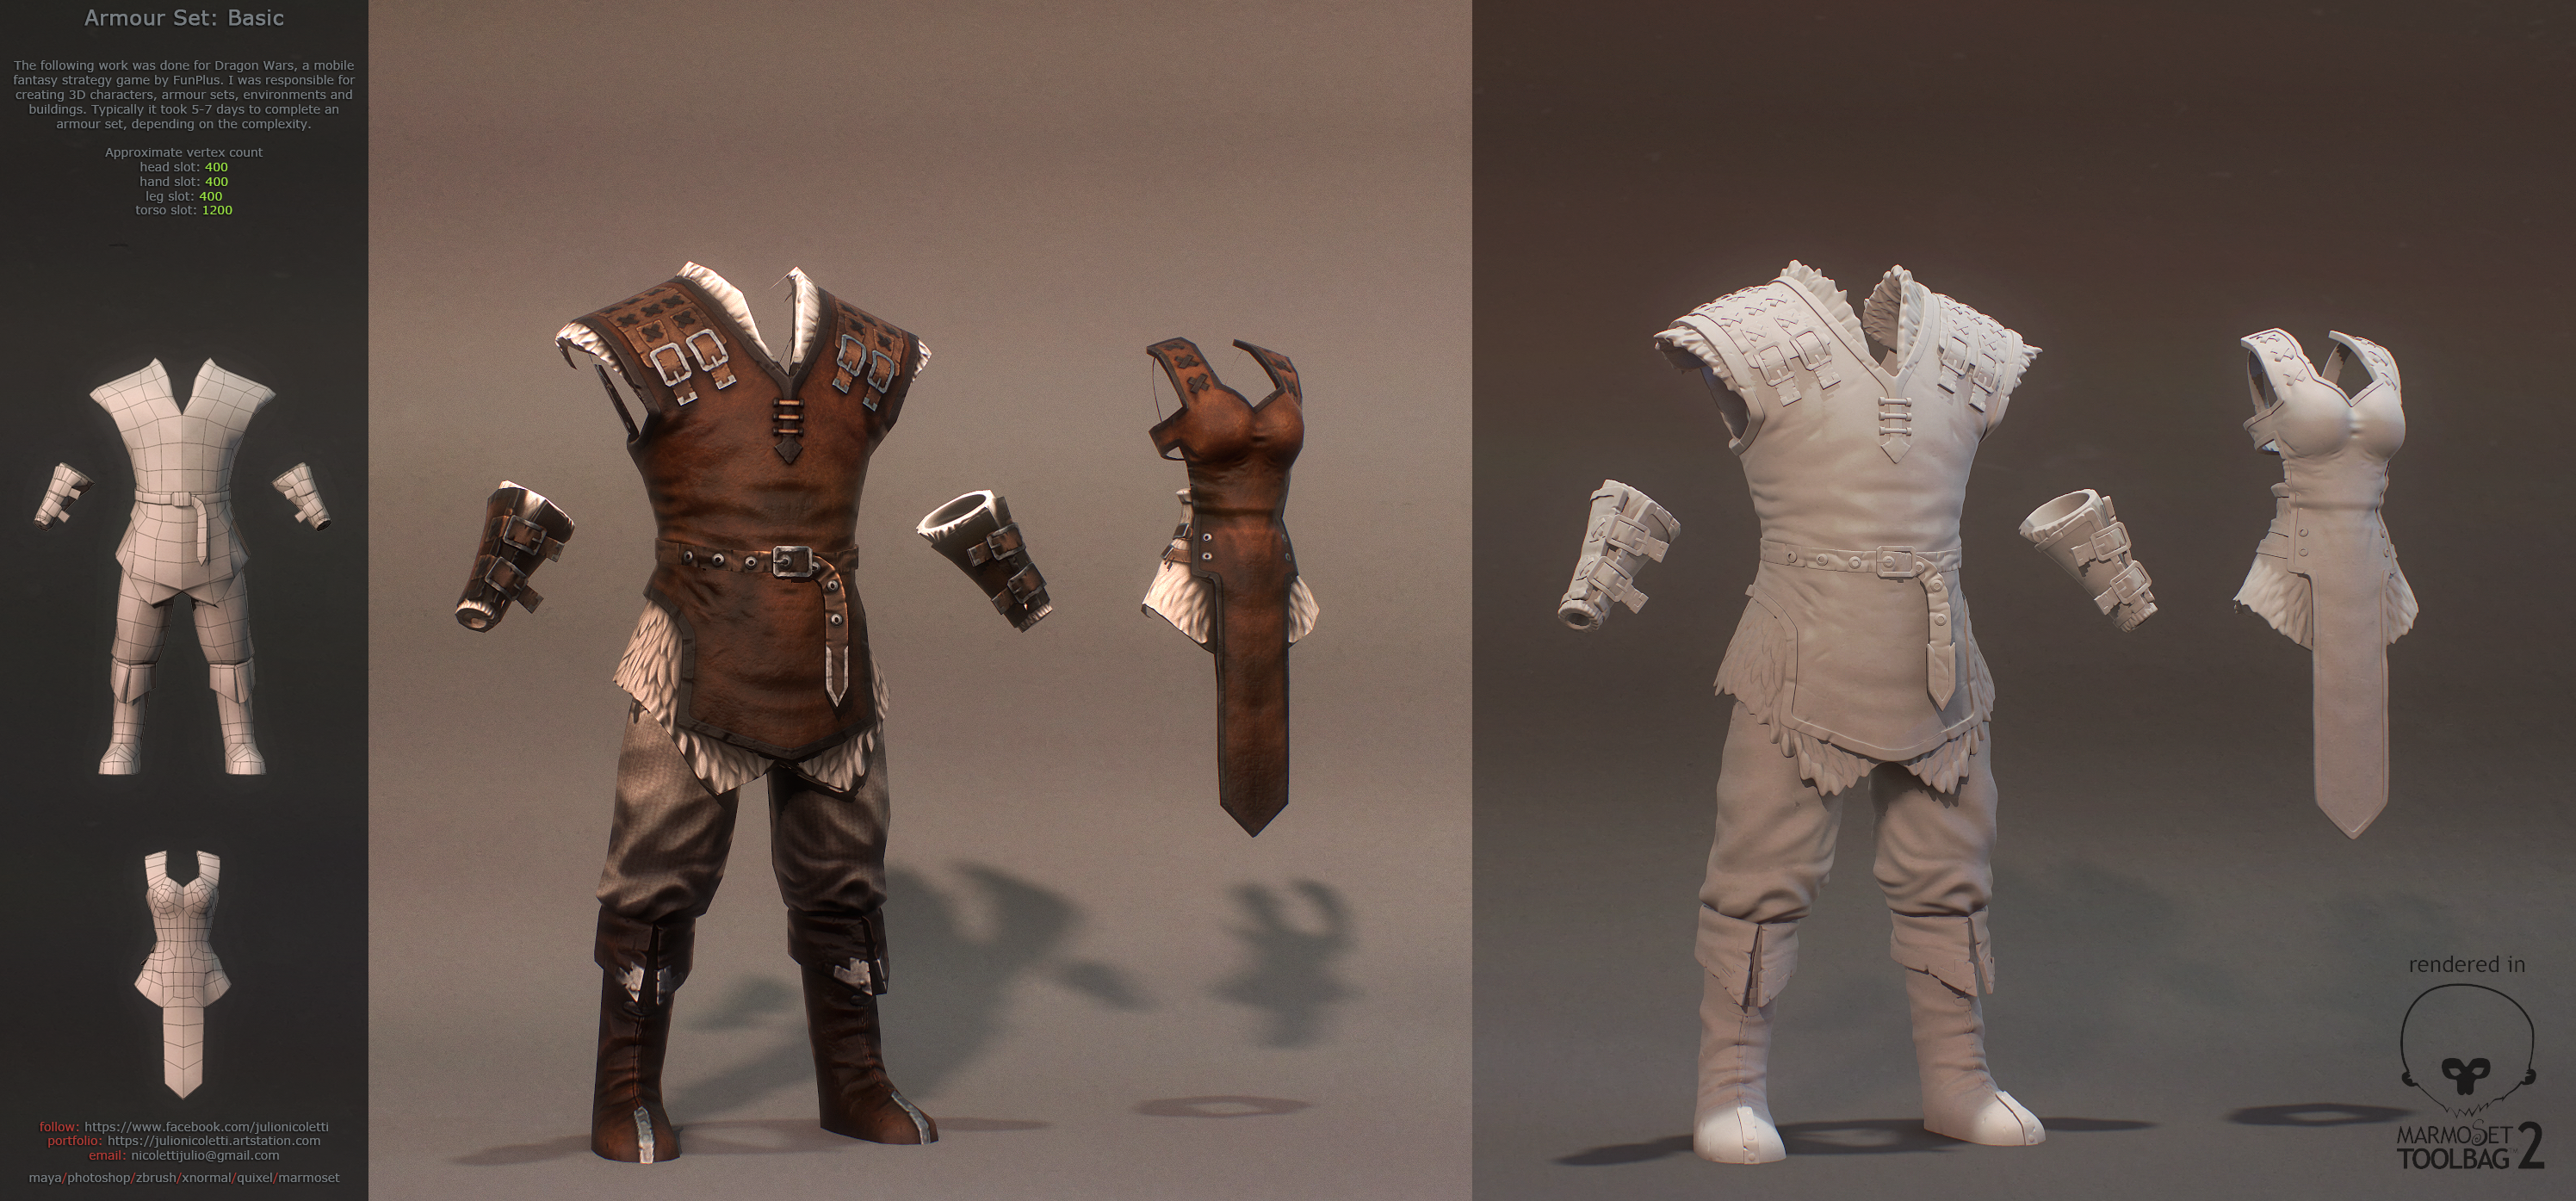 armour_set__basic_by_julionicoletti-d942a5g.png